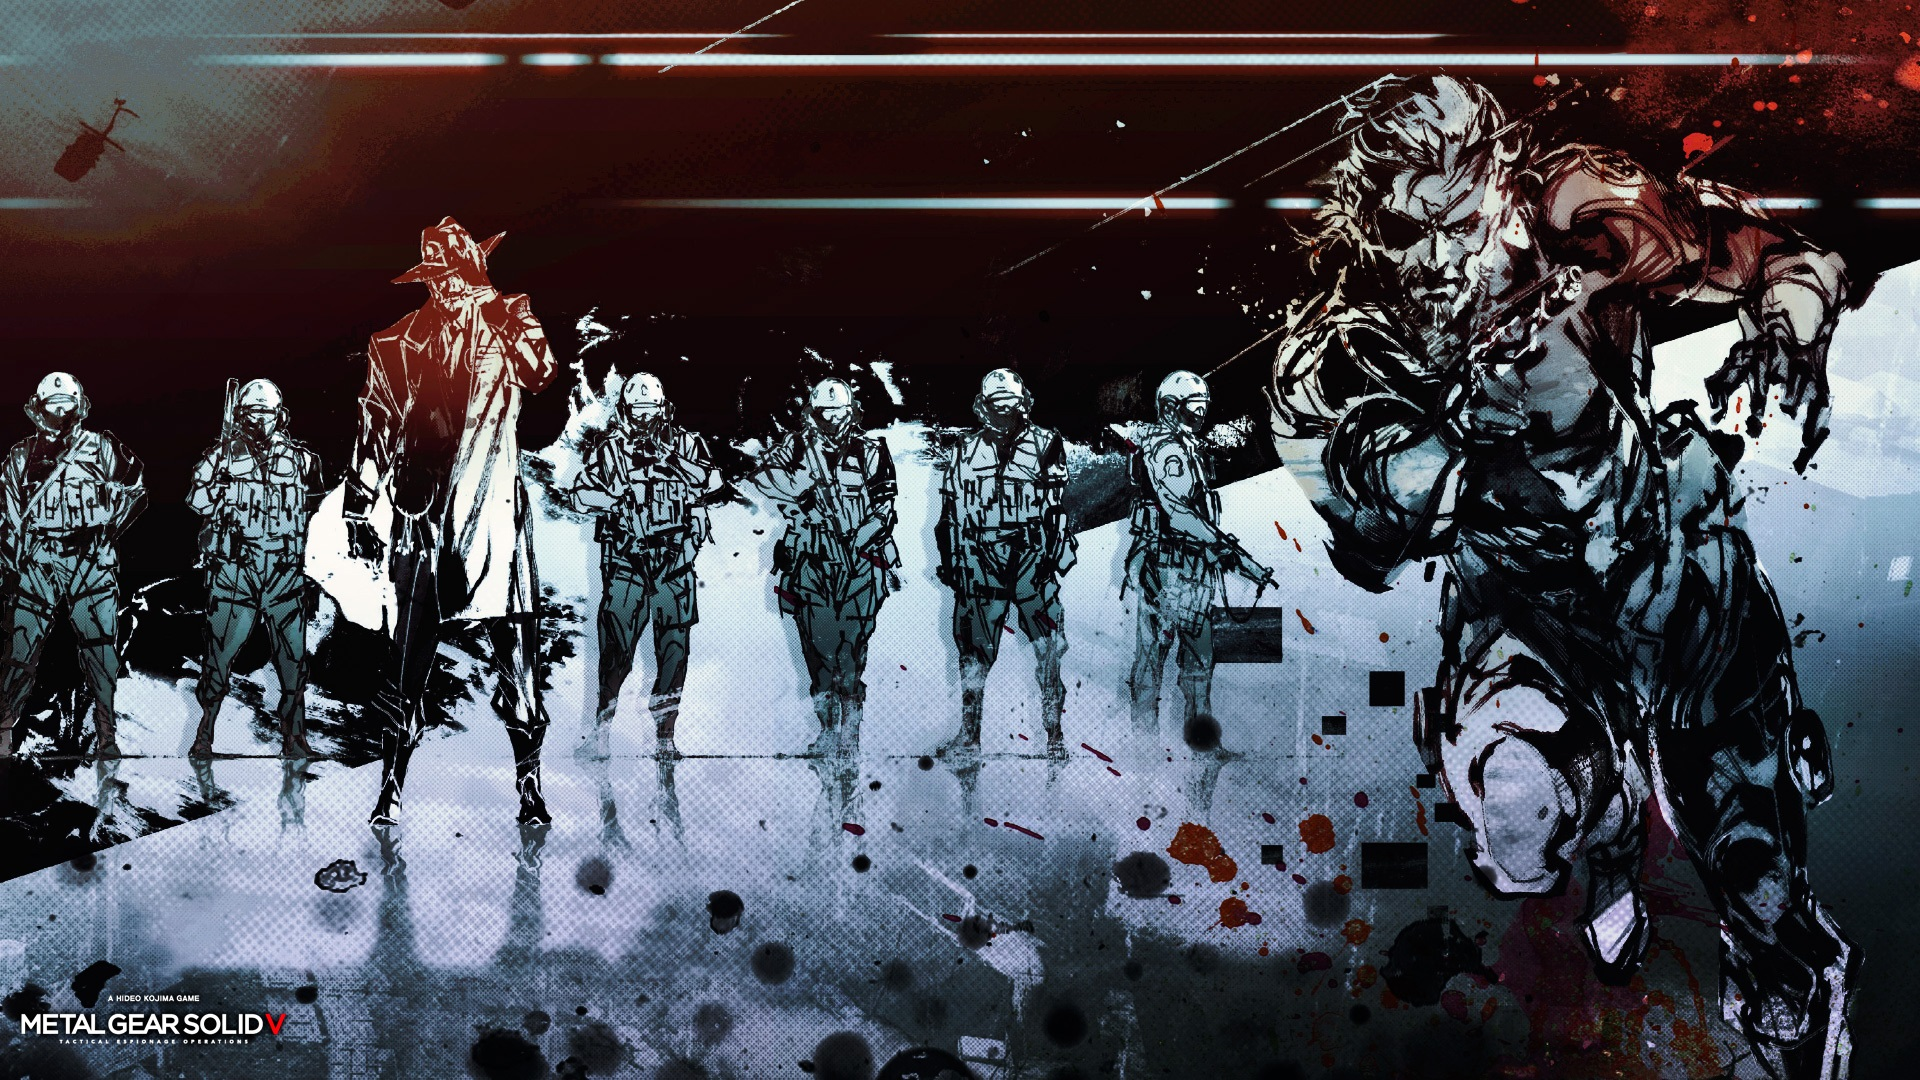 metal gear solid v wallpaper sketch characters